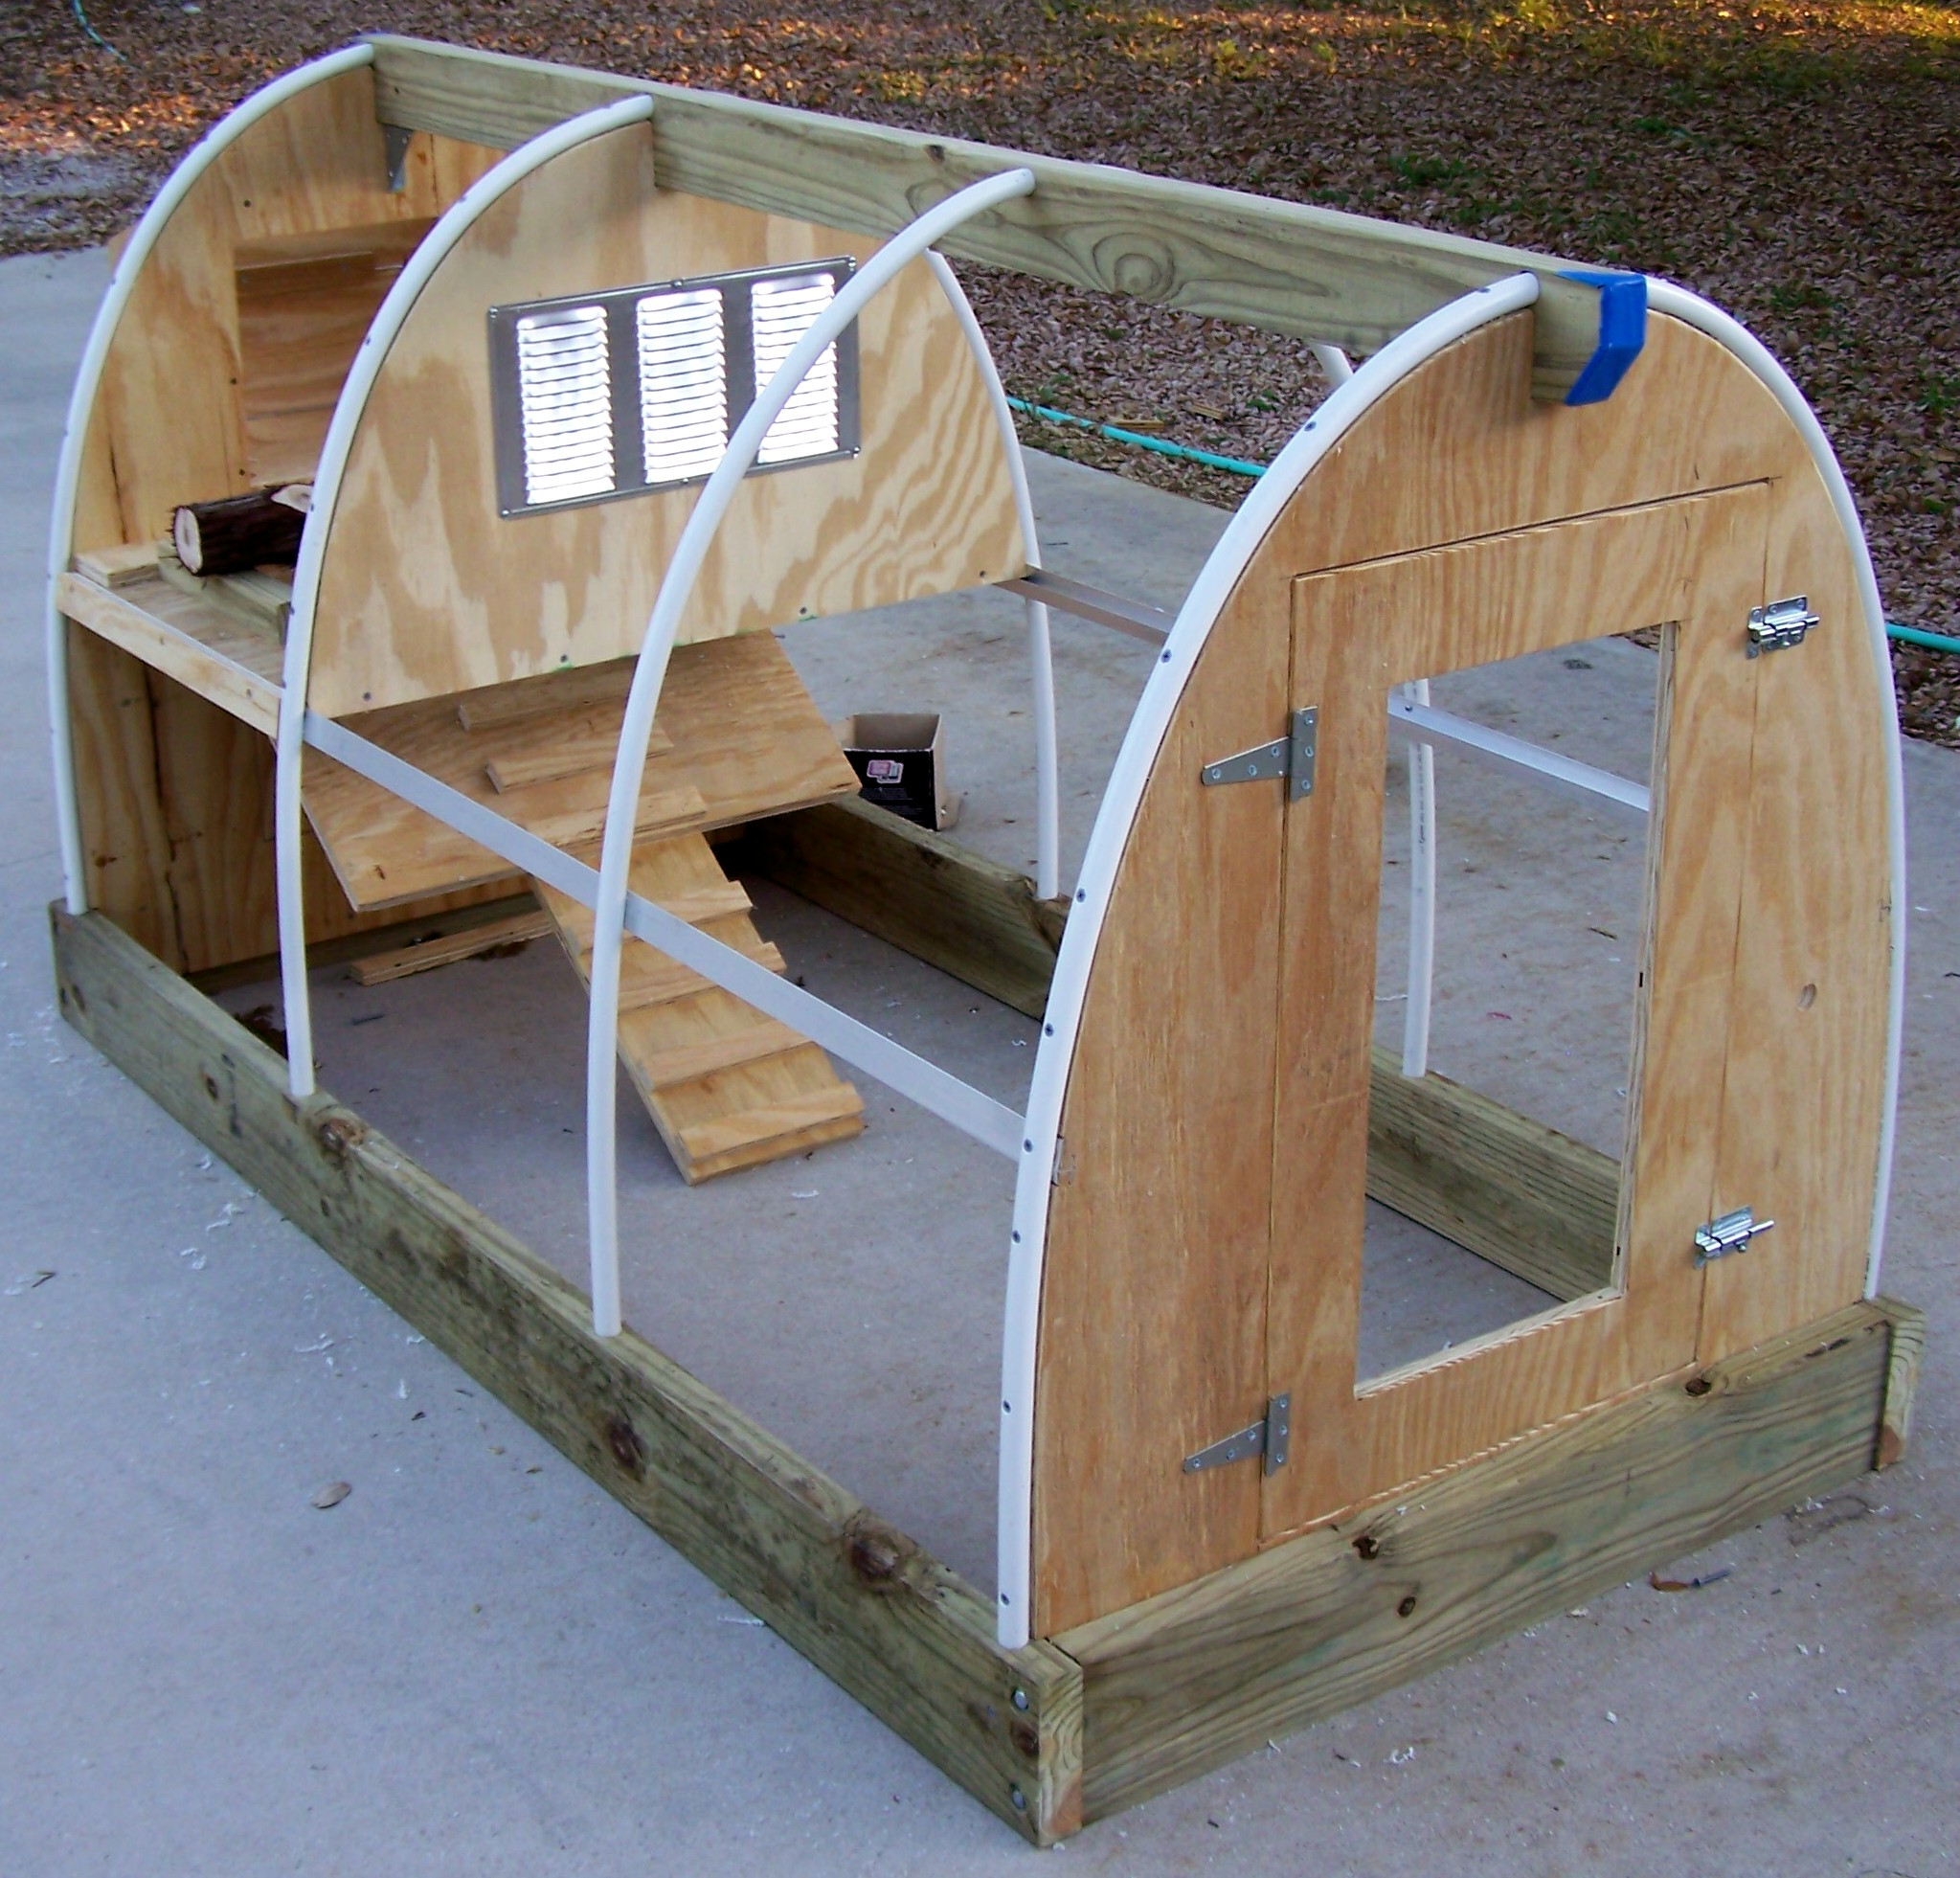 Mina pvc chicken coop plans Build a house online